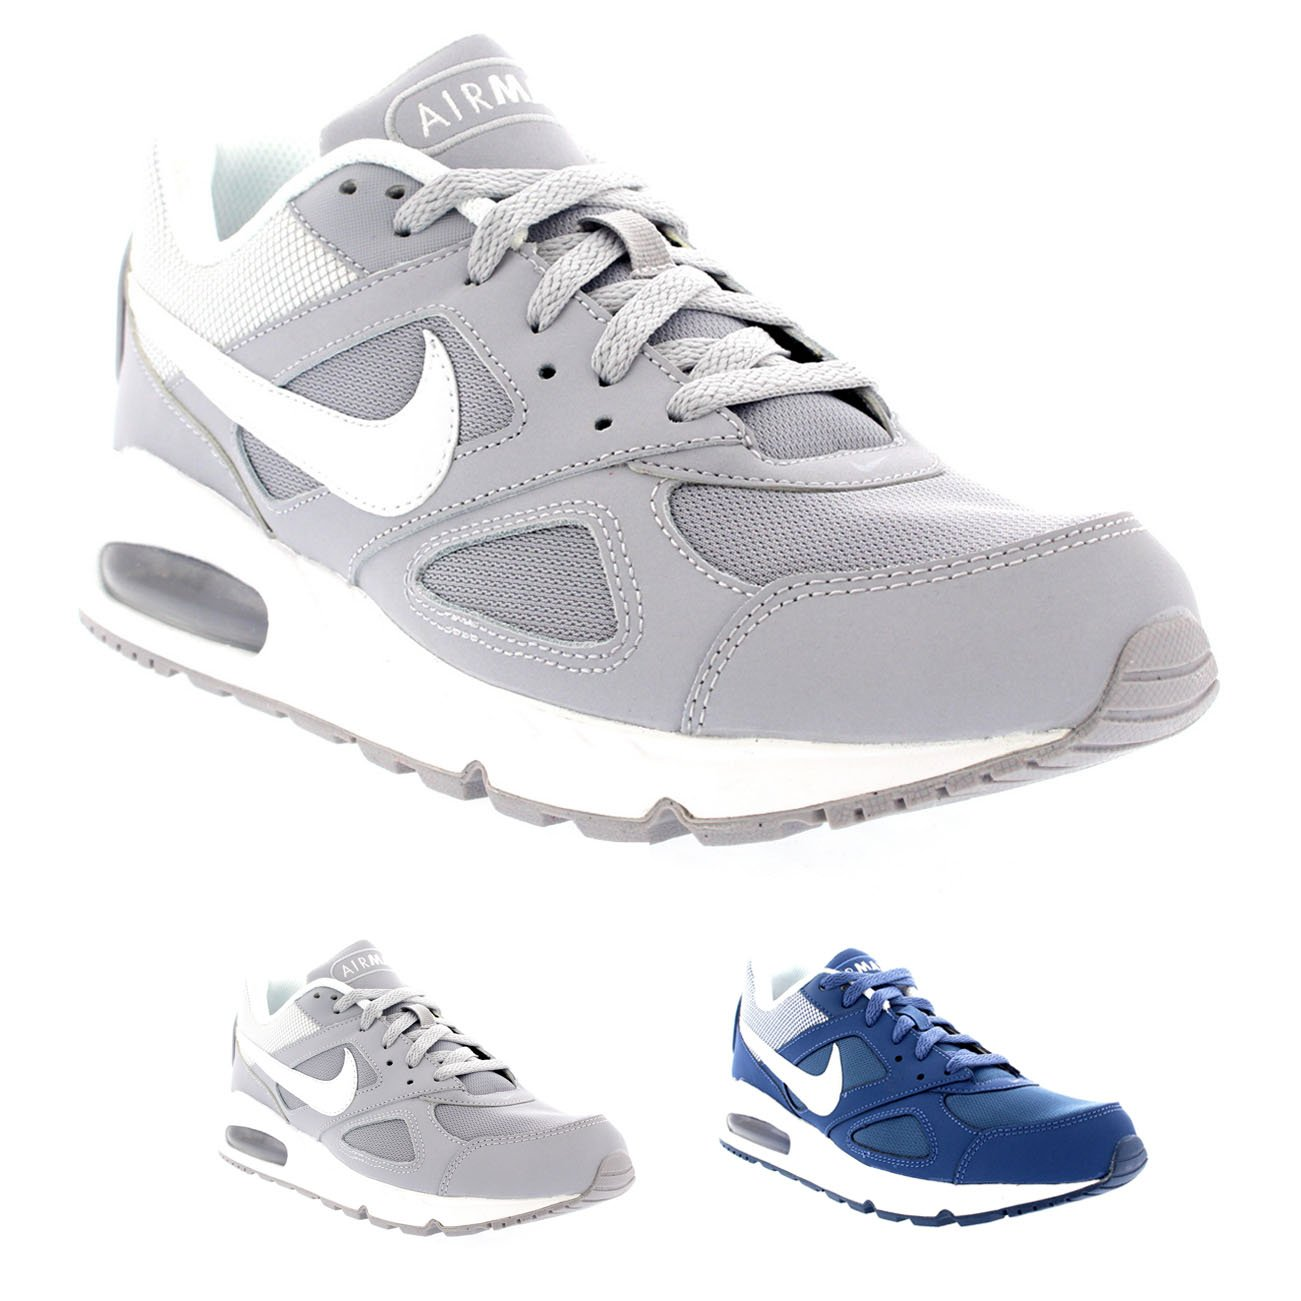 9afed09fa98a Galleon - Nike Air Max IVO Mens Running Shoes (10.5 D(M) US)